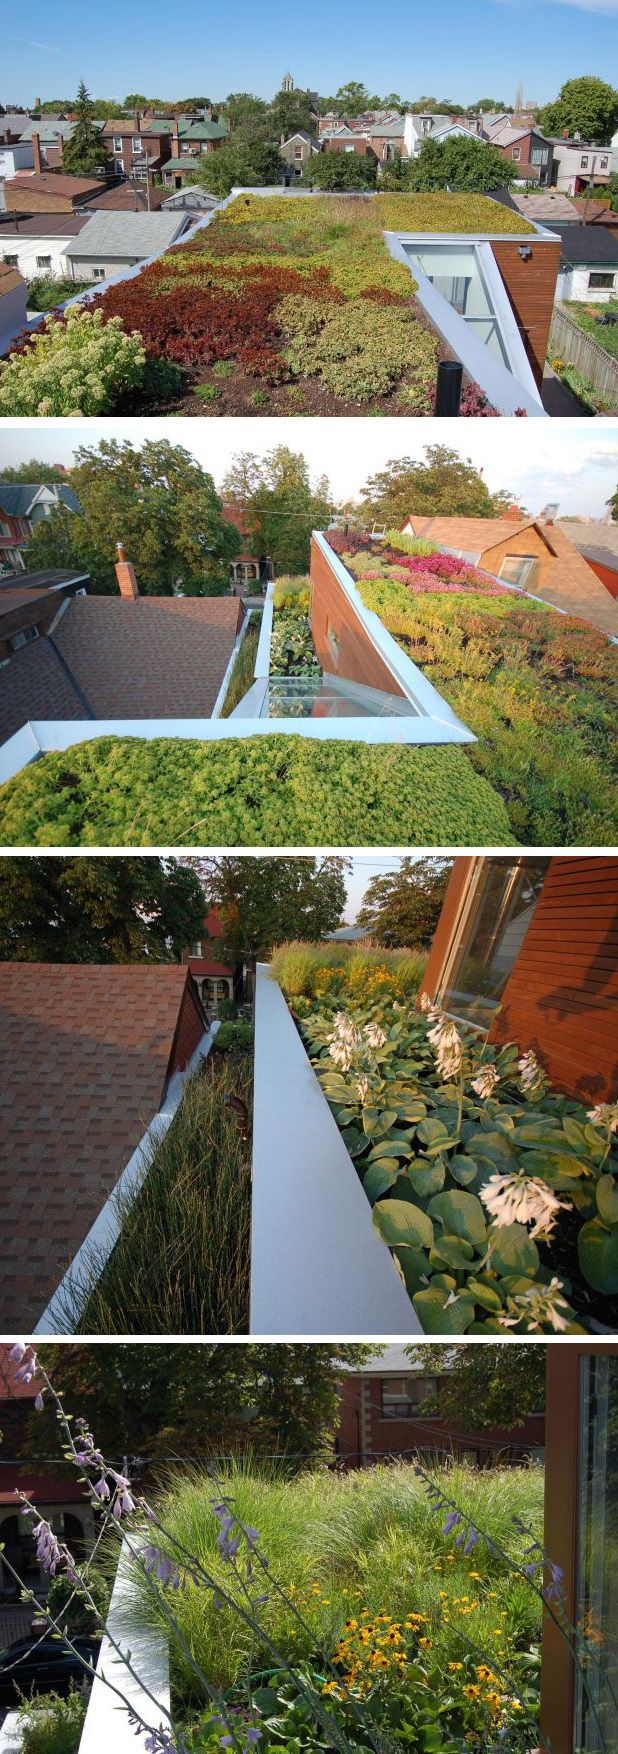 roof planting serene sun house | This modern house has a large green roof with a variety of ...